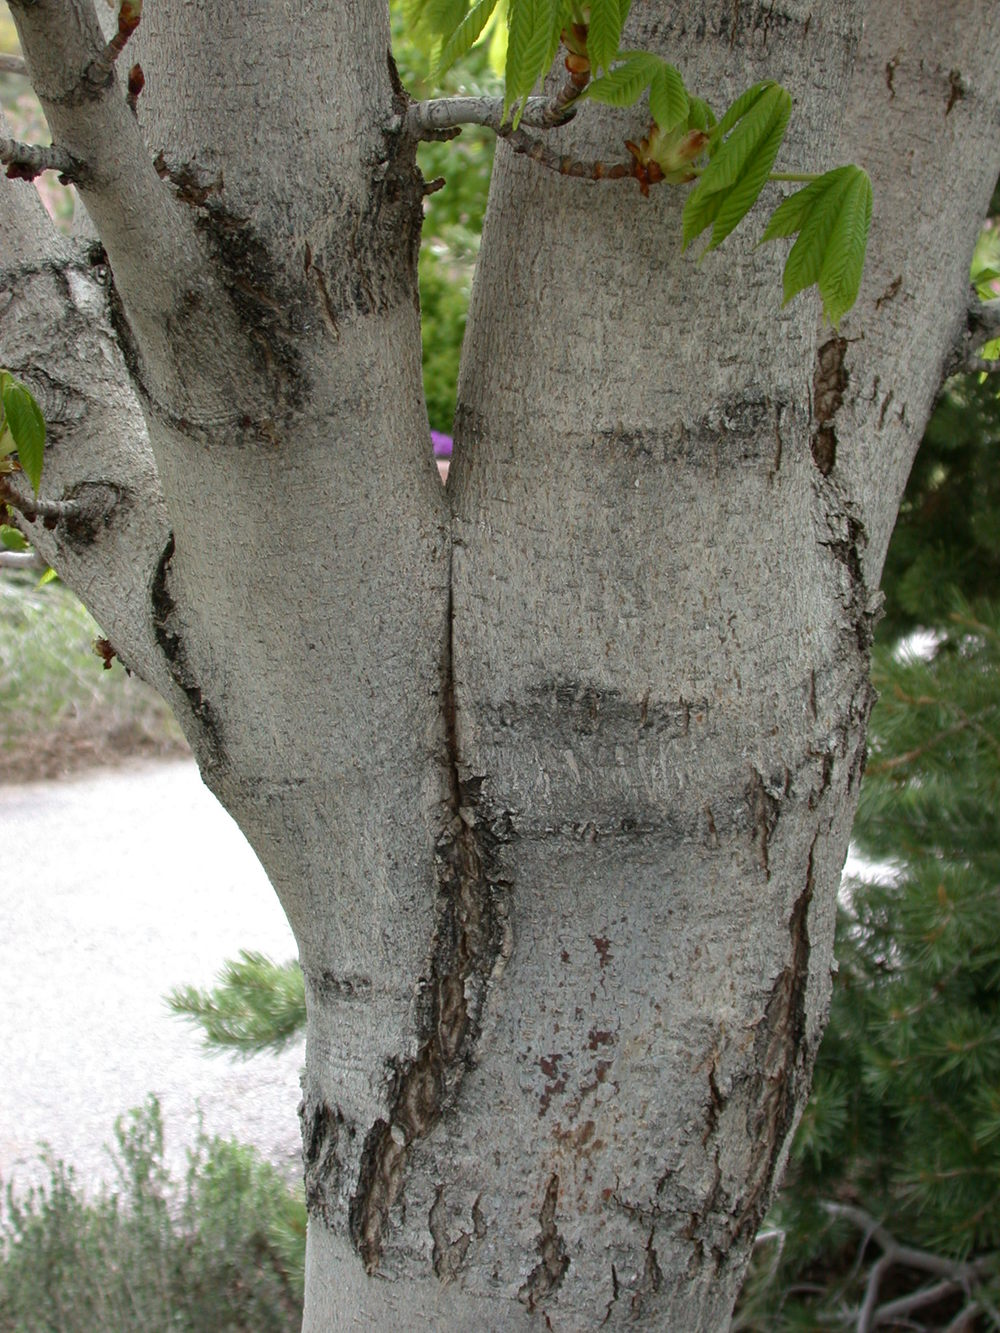 Note the vertical crack between the branch and trunk. Bark is growing between the branch and stem. ( source )